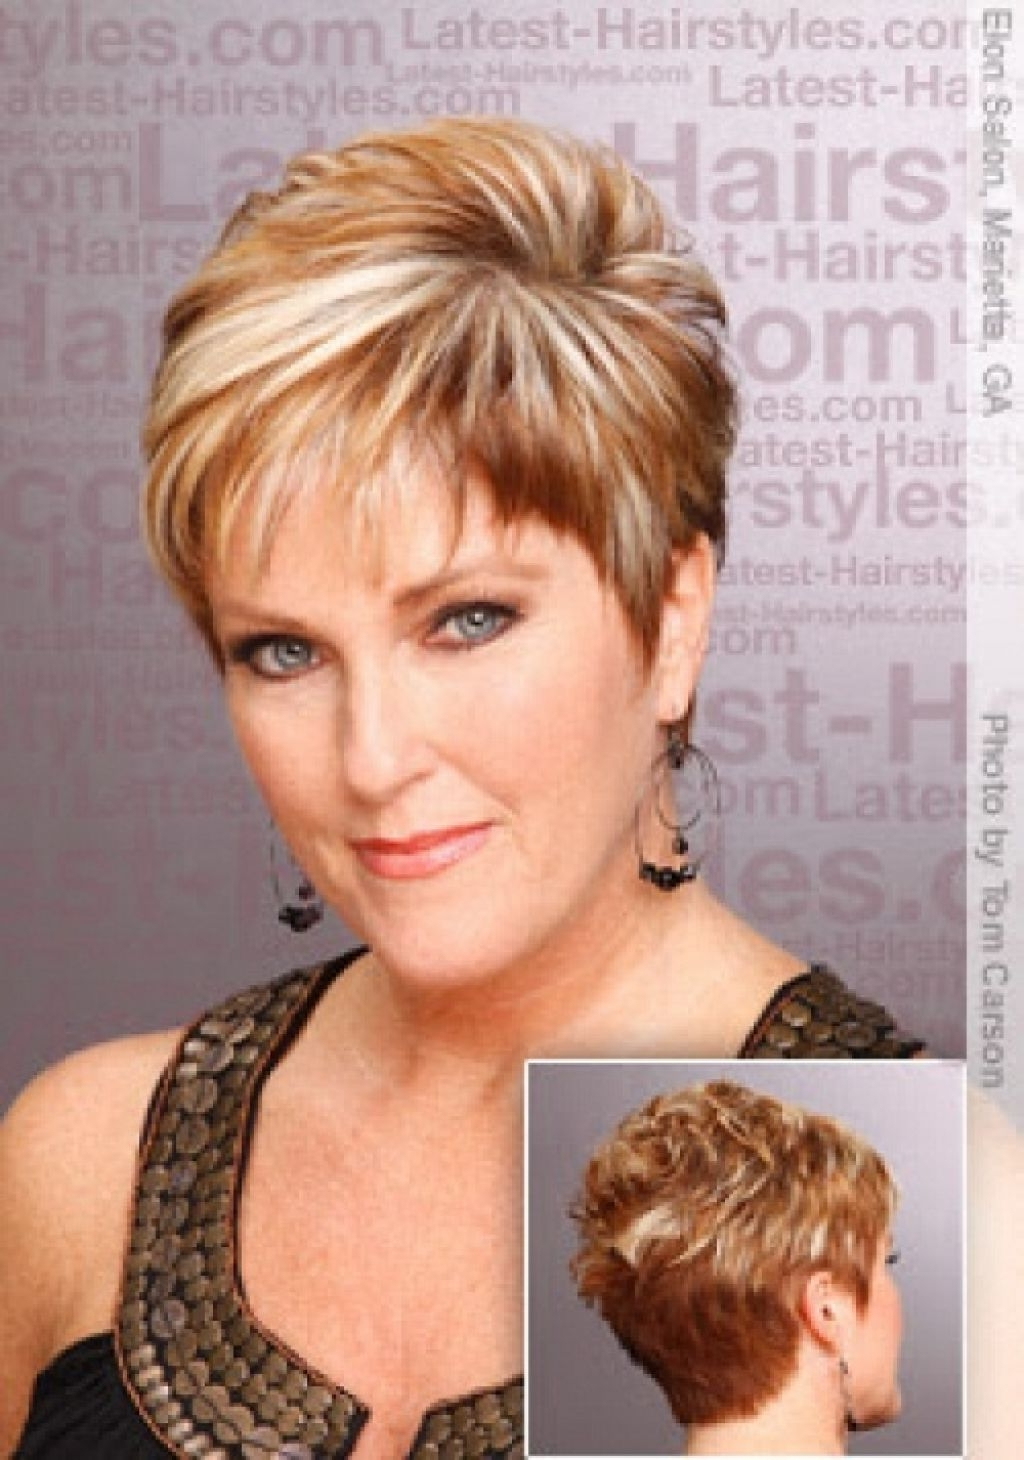 Find Out Full Gallery Of Beautiful Haircuts For Fat Women Over 40 Within Short Curly Hairstyles For Over (View 14 of 25)